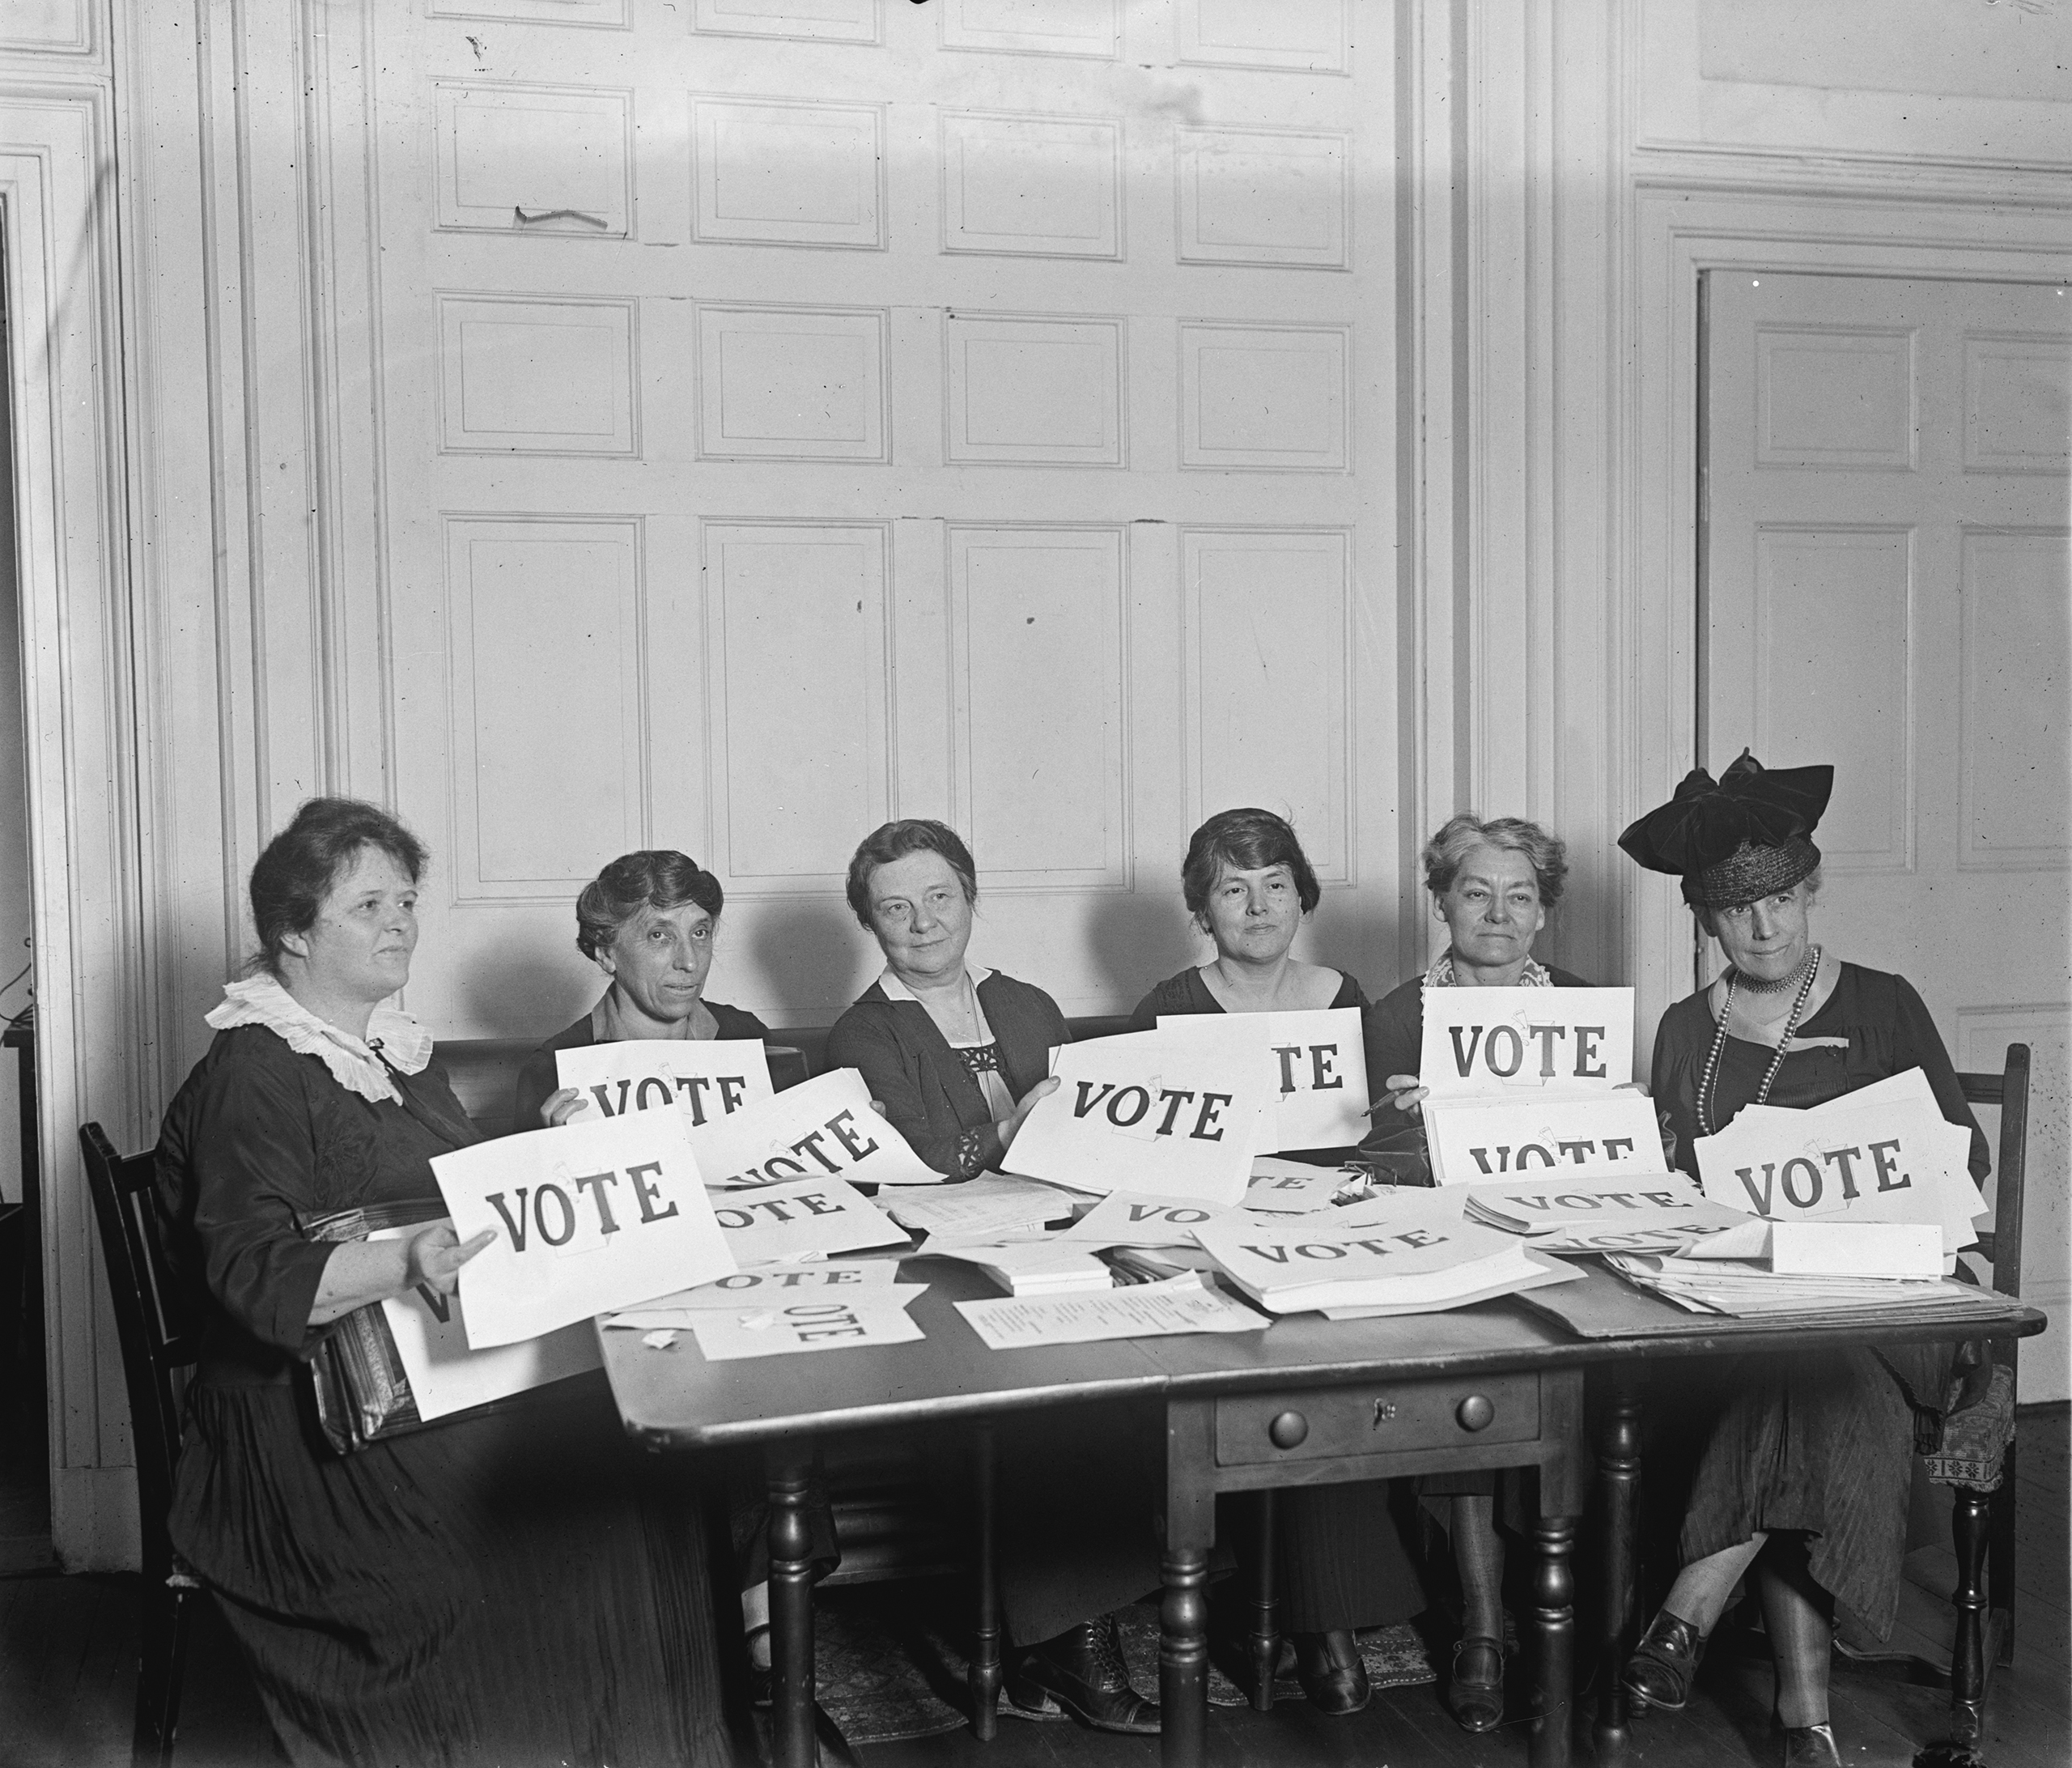 Members of the National League of Women Voters, seated around a table, holding signs that read VOTE, in Sep. 1924.